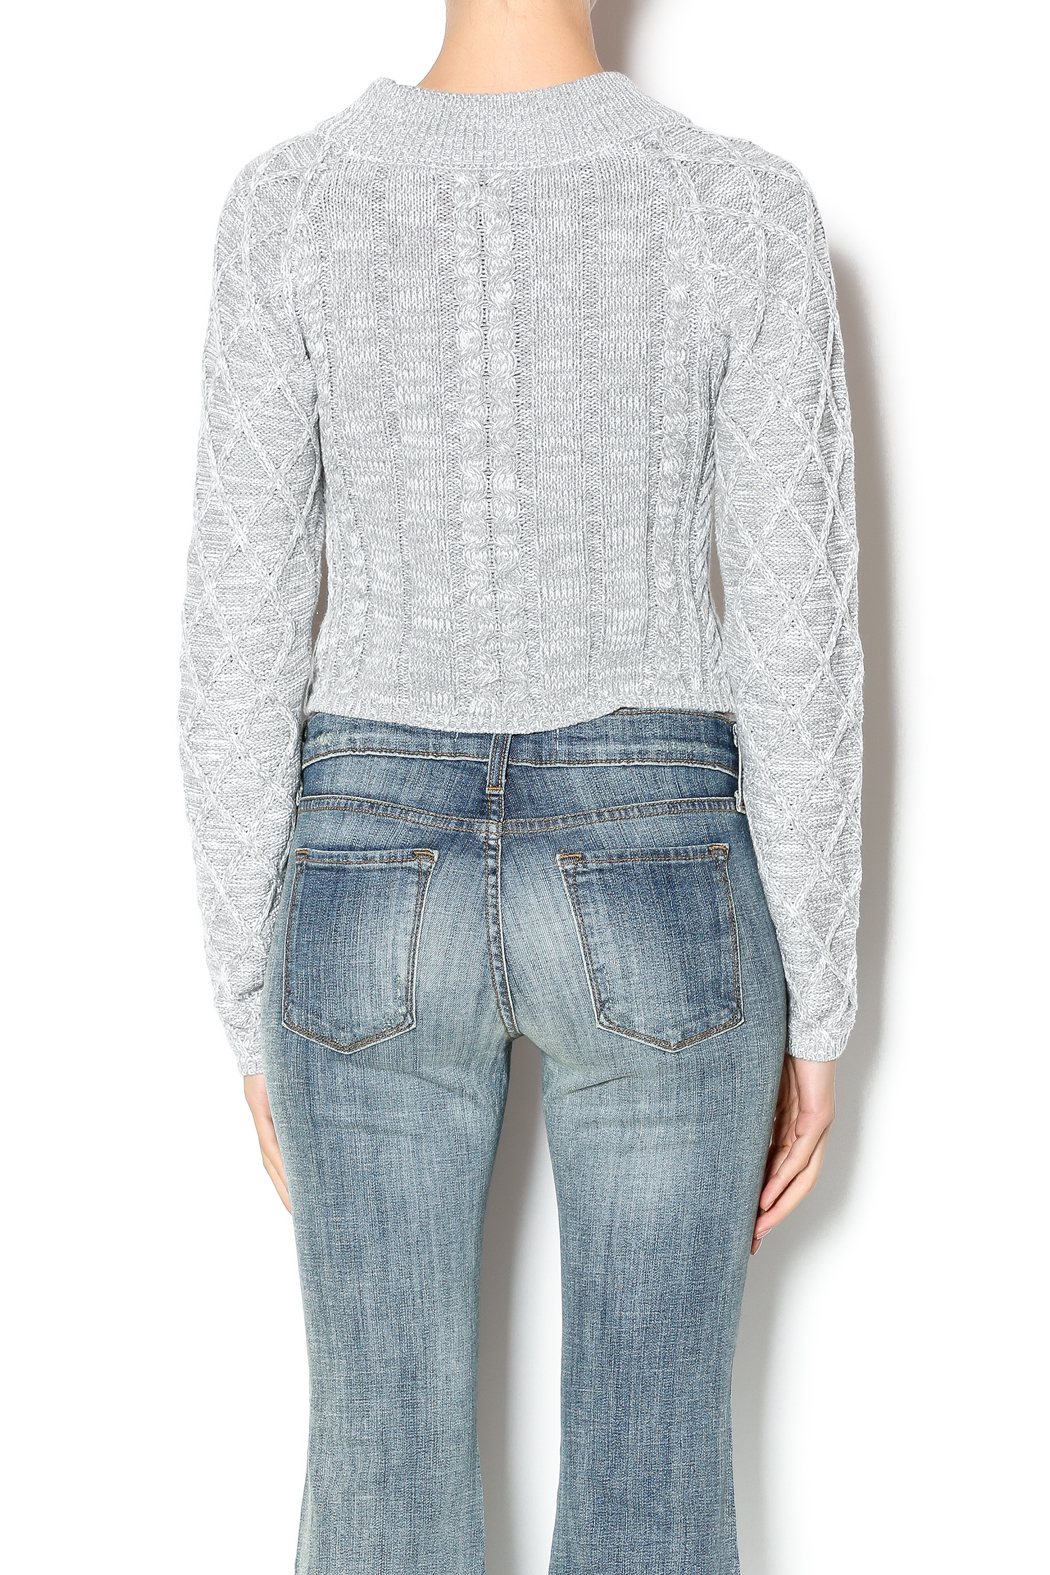 Uniq Grey Cropped Sweater from Montana by Foxwood Boutique ...